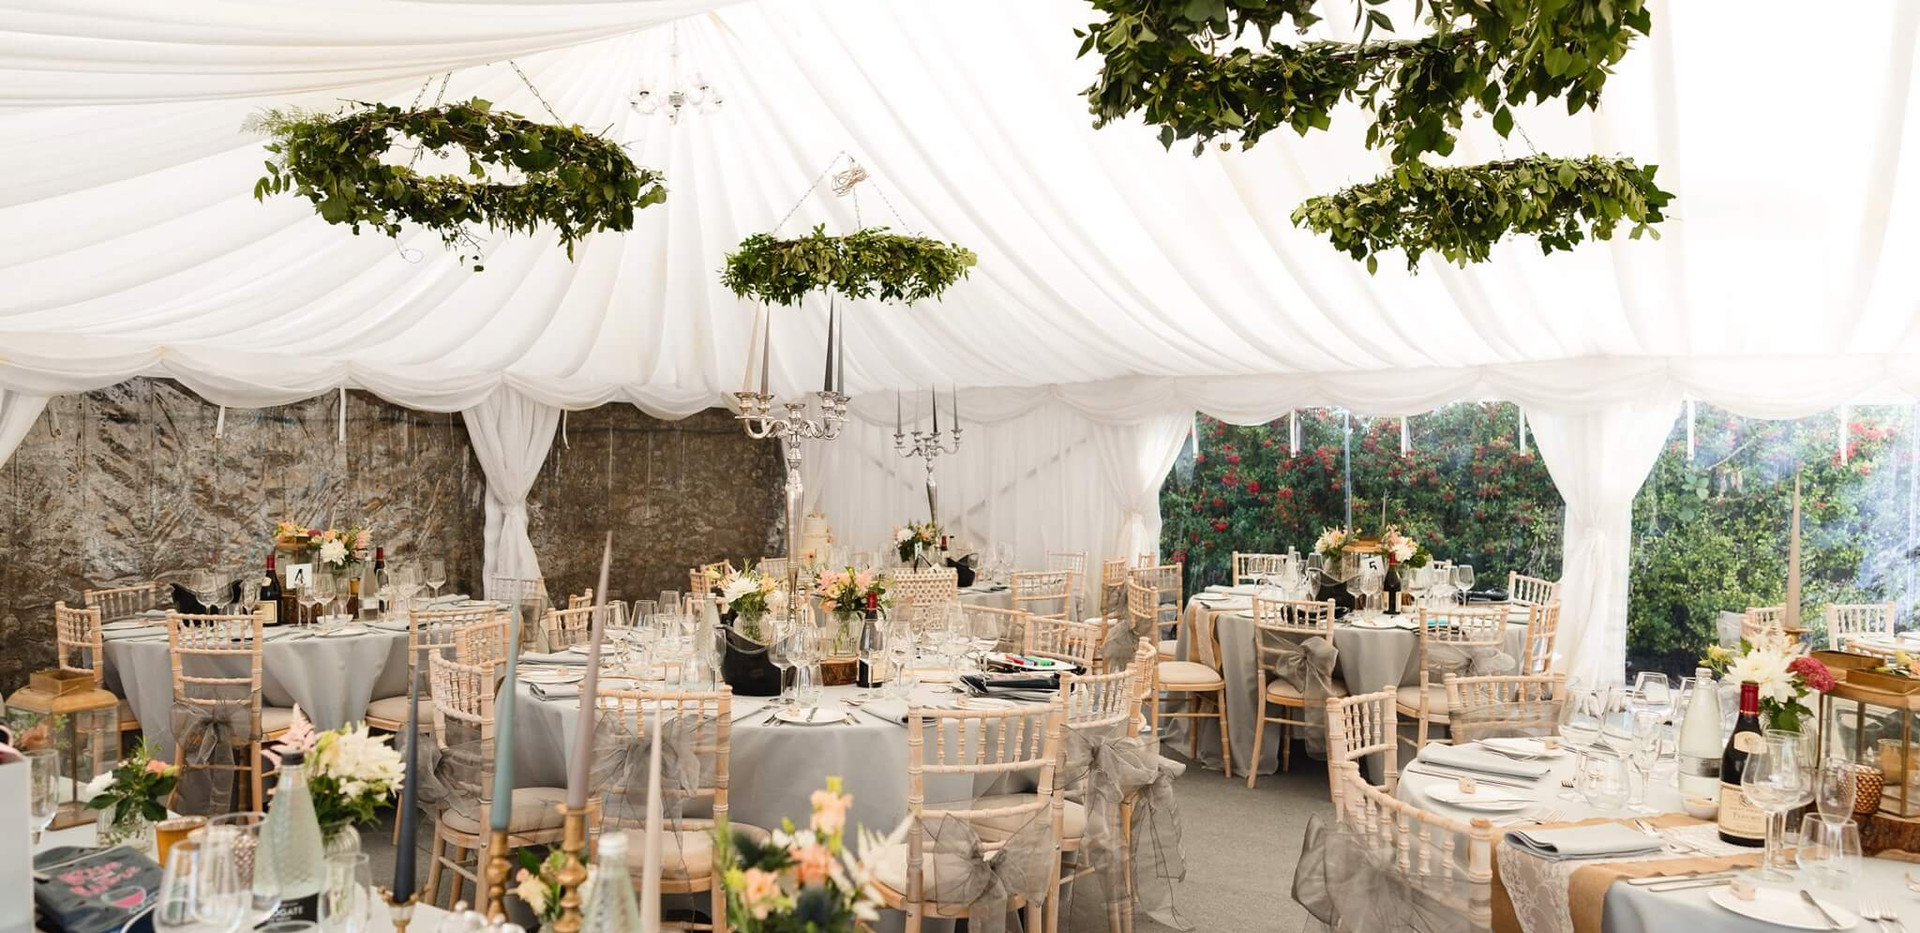 Hospitality Hire - Catering & Event Hire, Wedding Furniture Hire Dorset